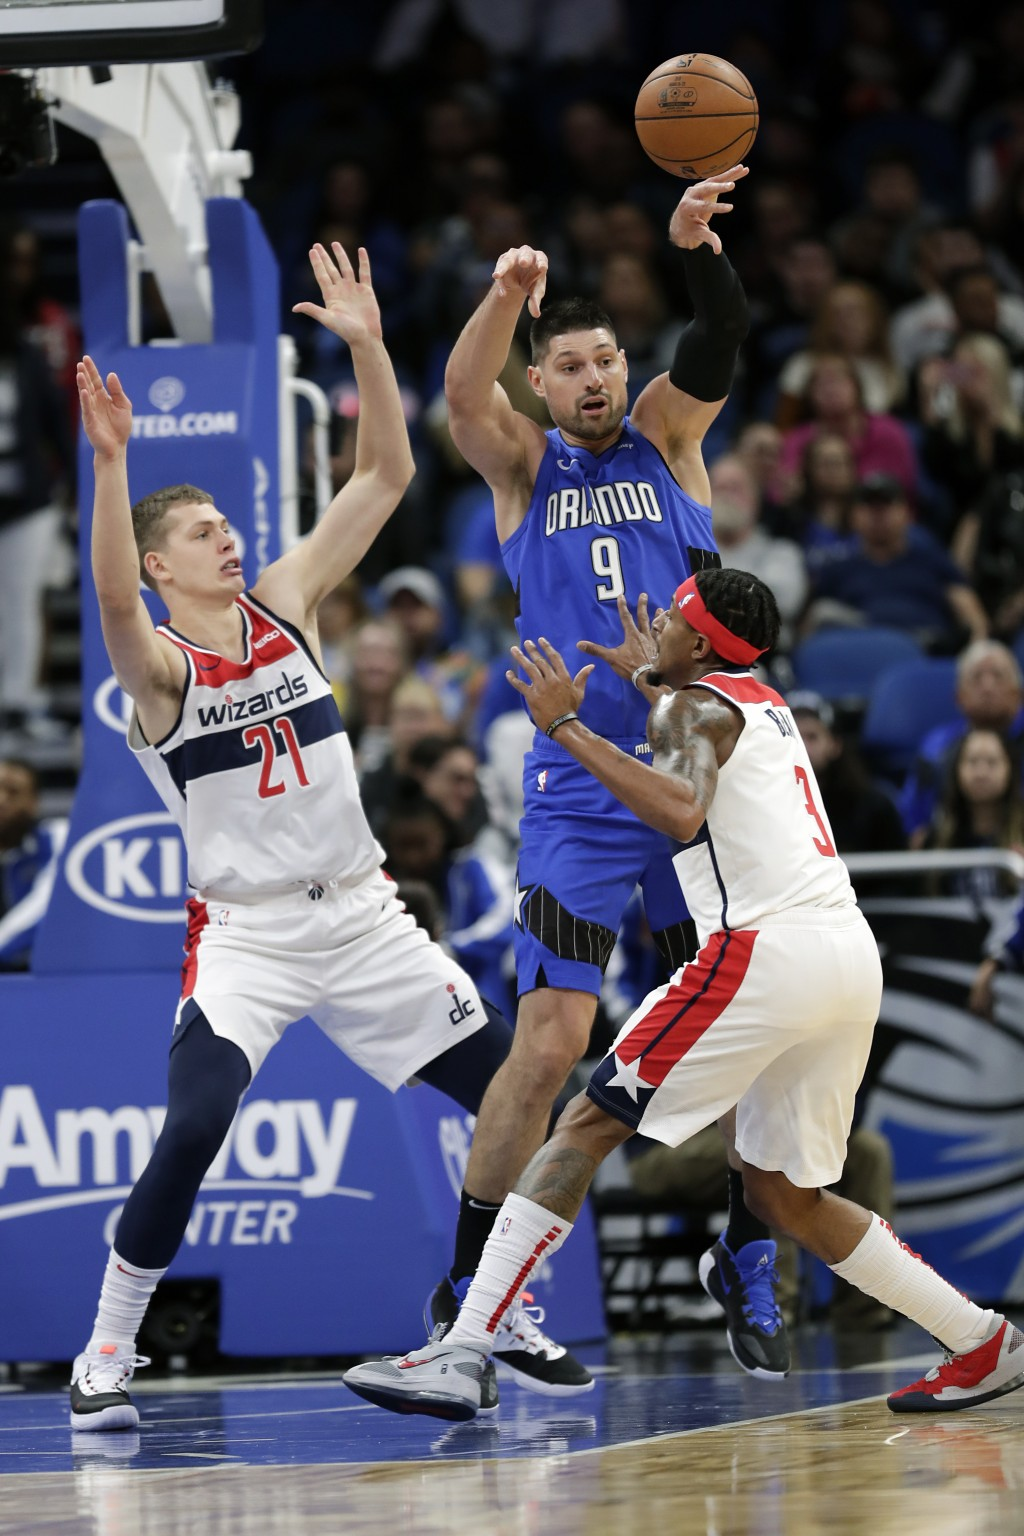 Orlando Magic's Nikola Vucevic (9) passes the ball out as he is boxed in by Washington Wizards' Moritz Wagner (21) and Bradley Beal, right, during the...